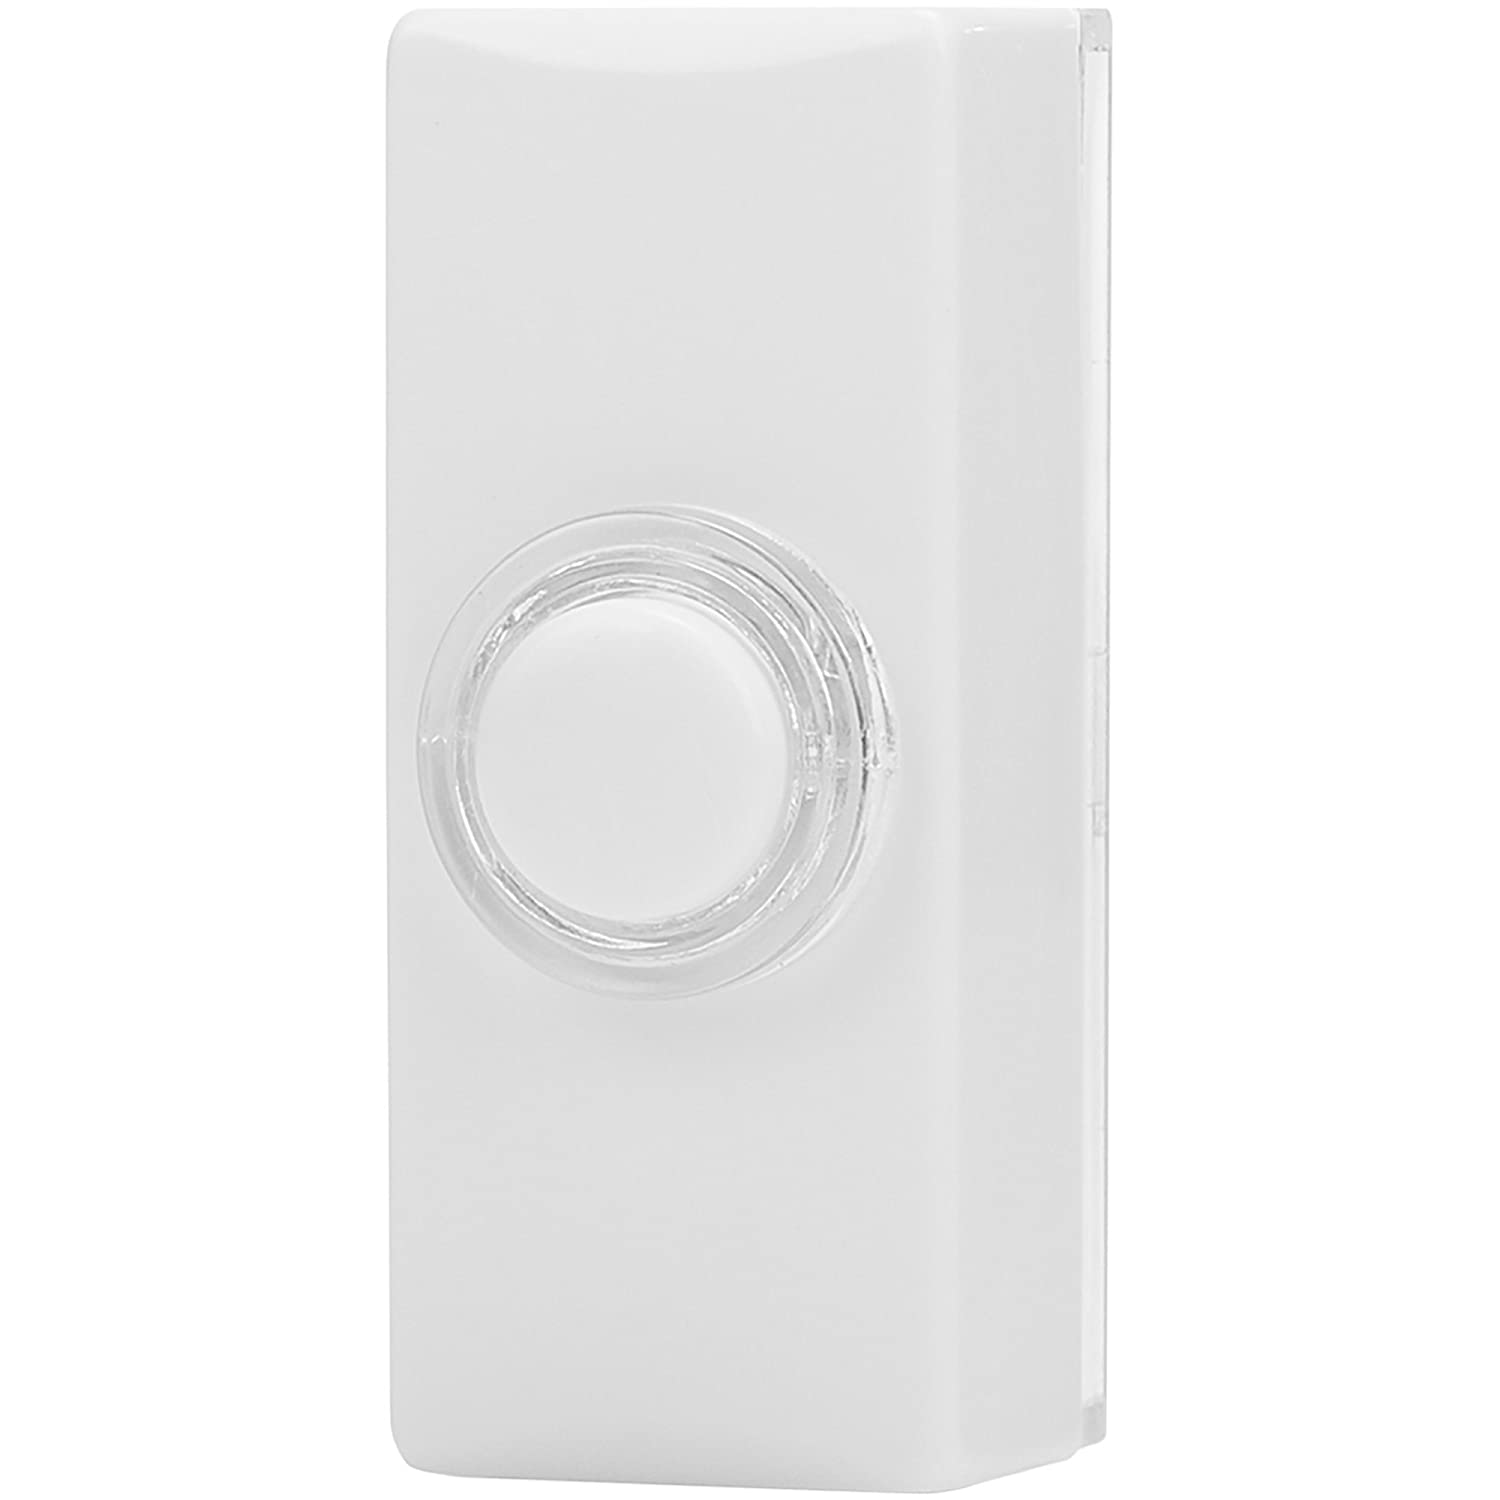 Byron 7730 Wired Bell Push White Illuminated Button Amazon Doorbell Wiring Diagram Friedland Door Circuit Smlf More Diy Tools